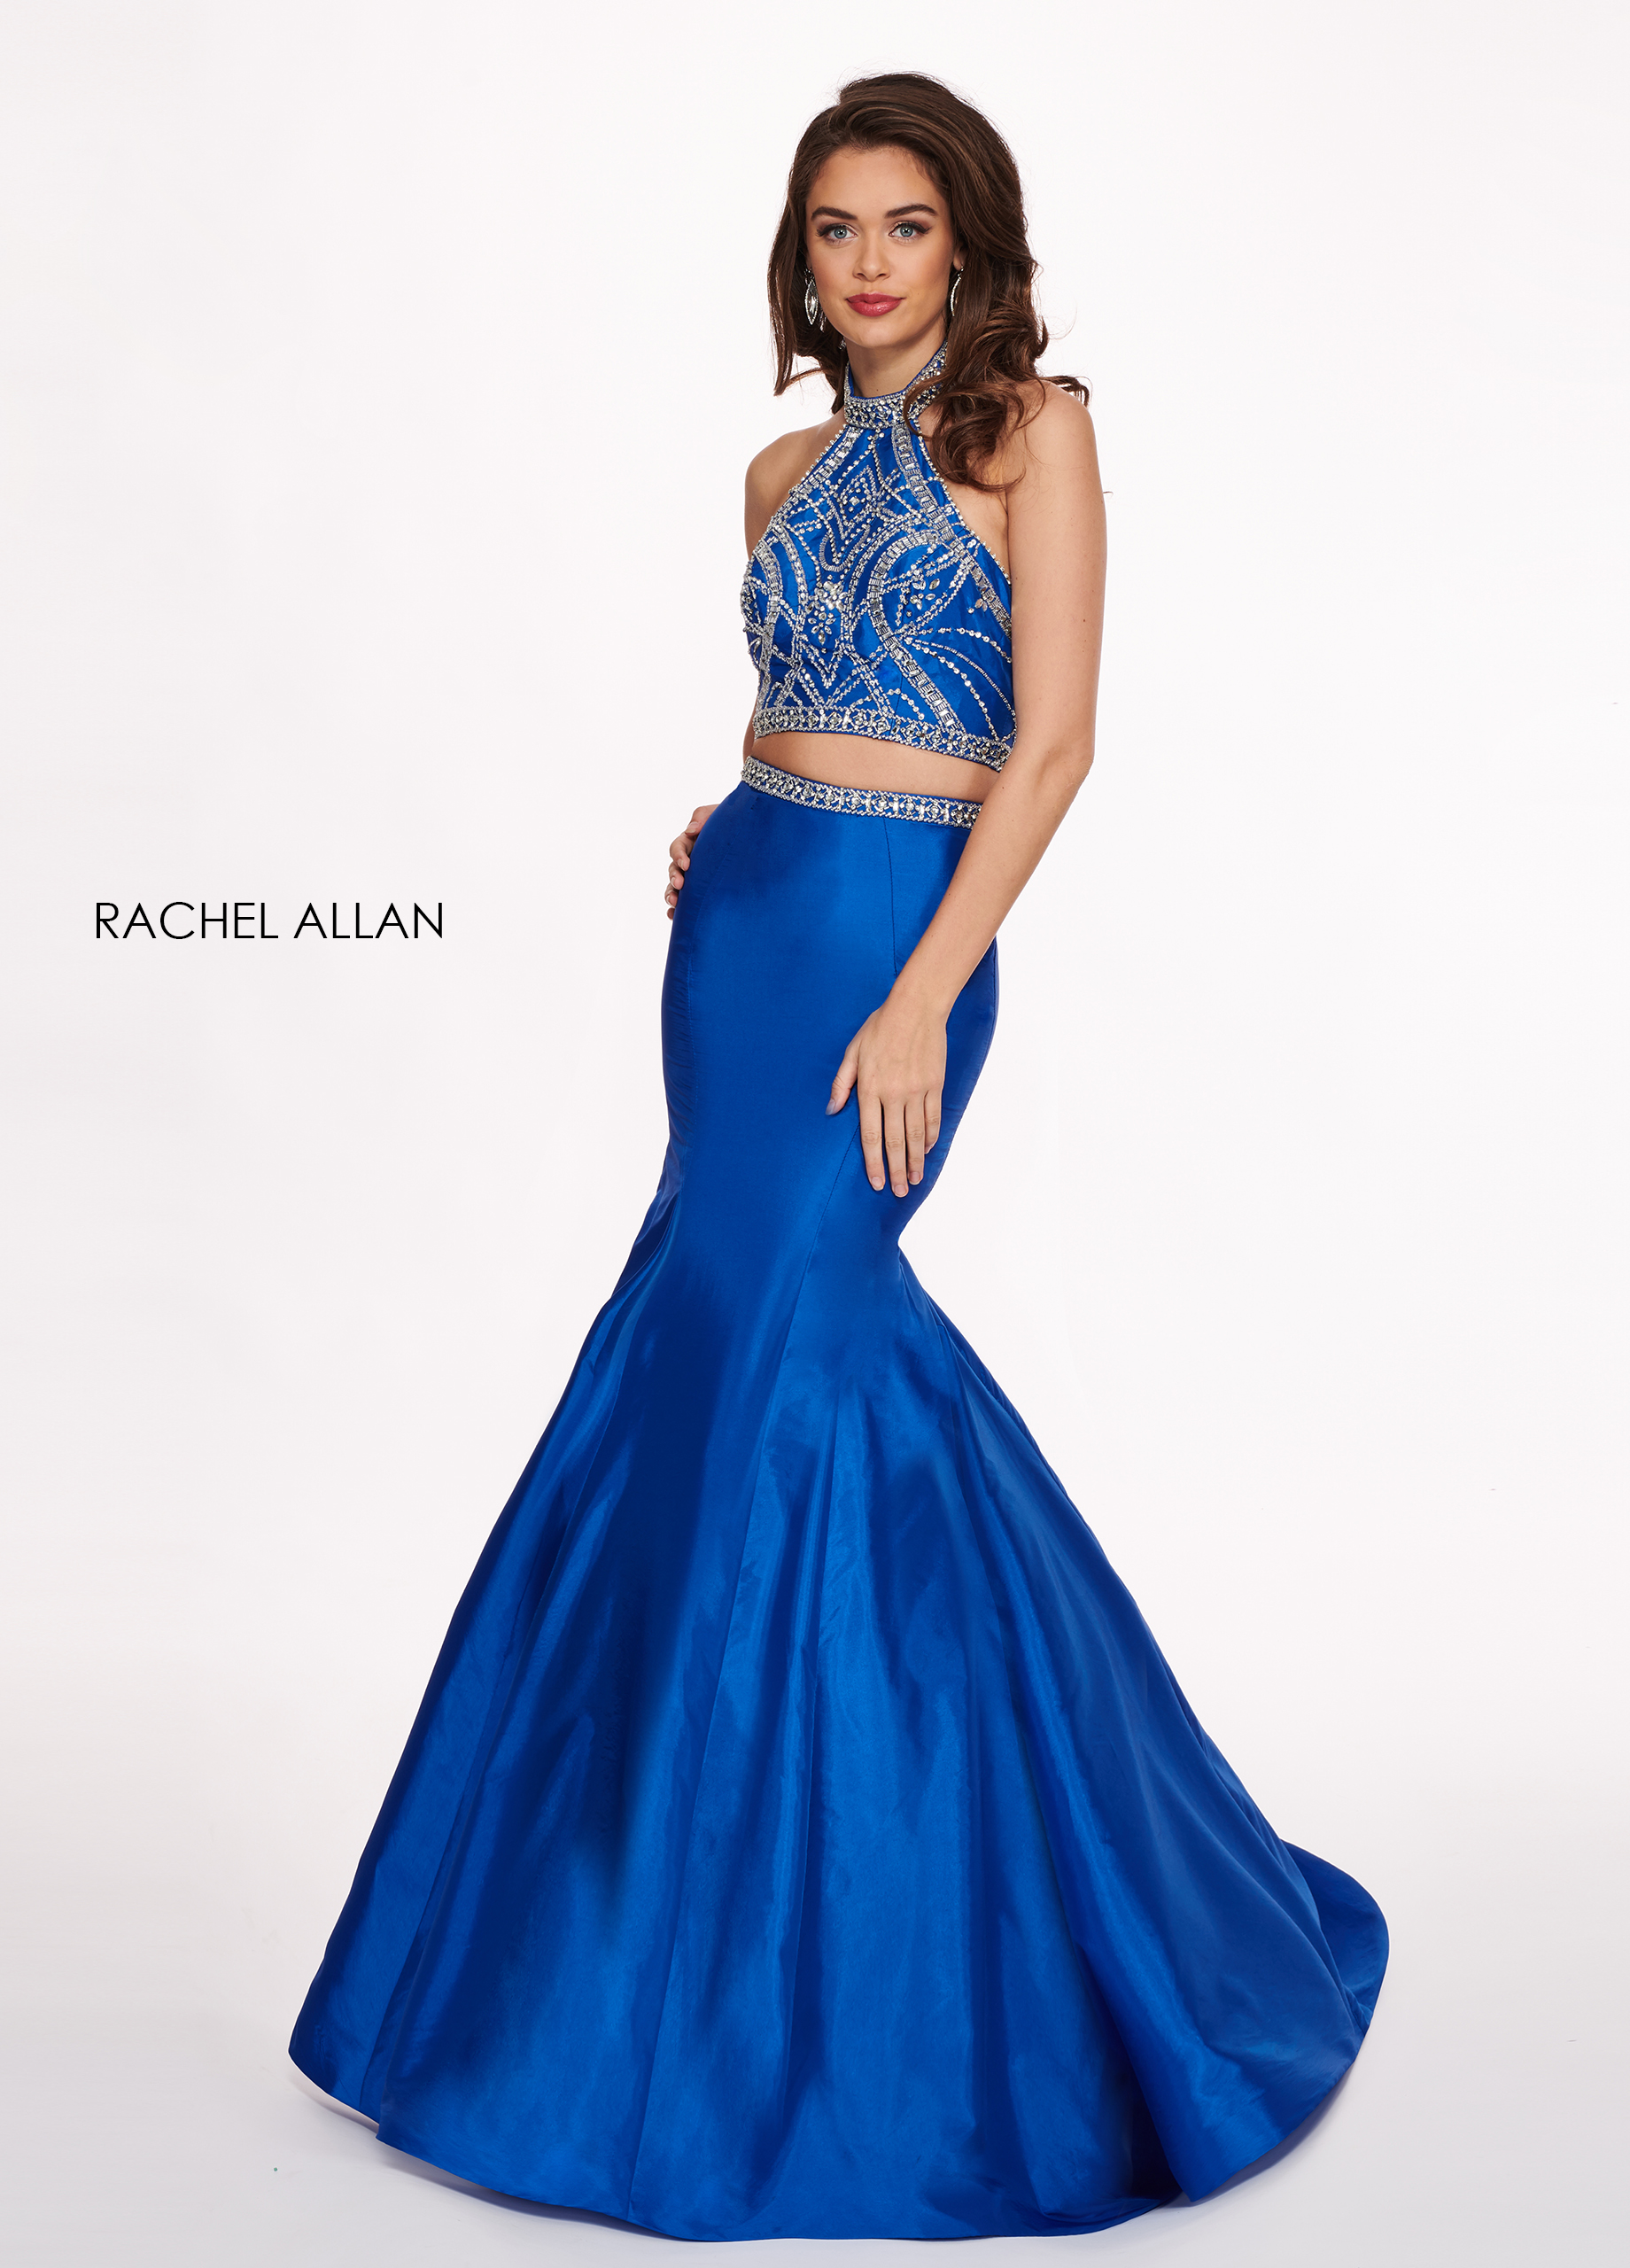 Choker Two-Piece Prom Dresses in Blue Color